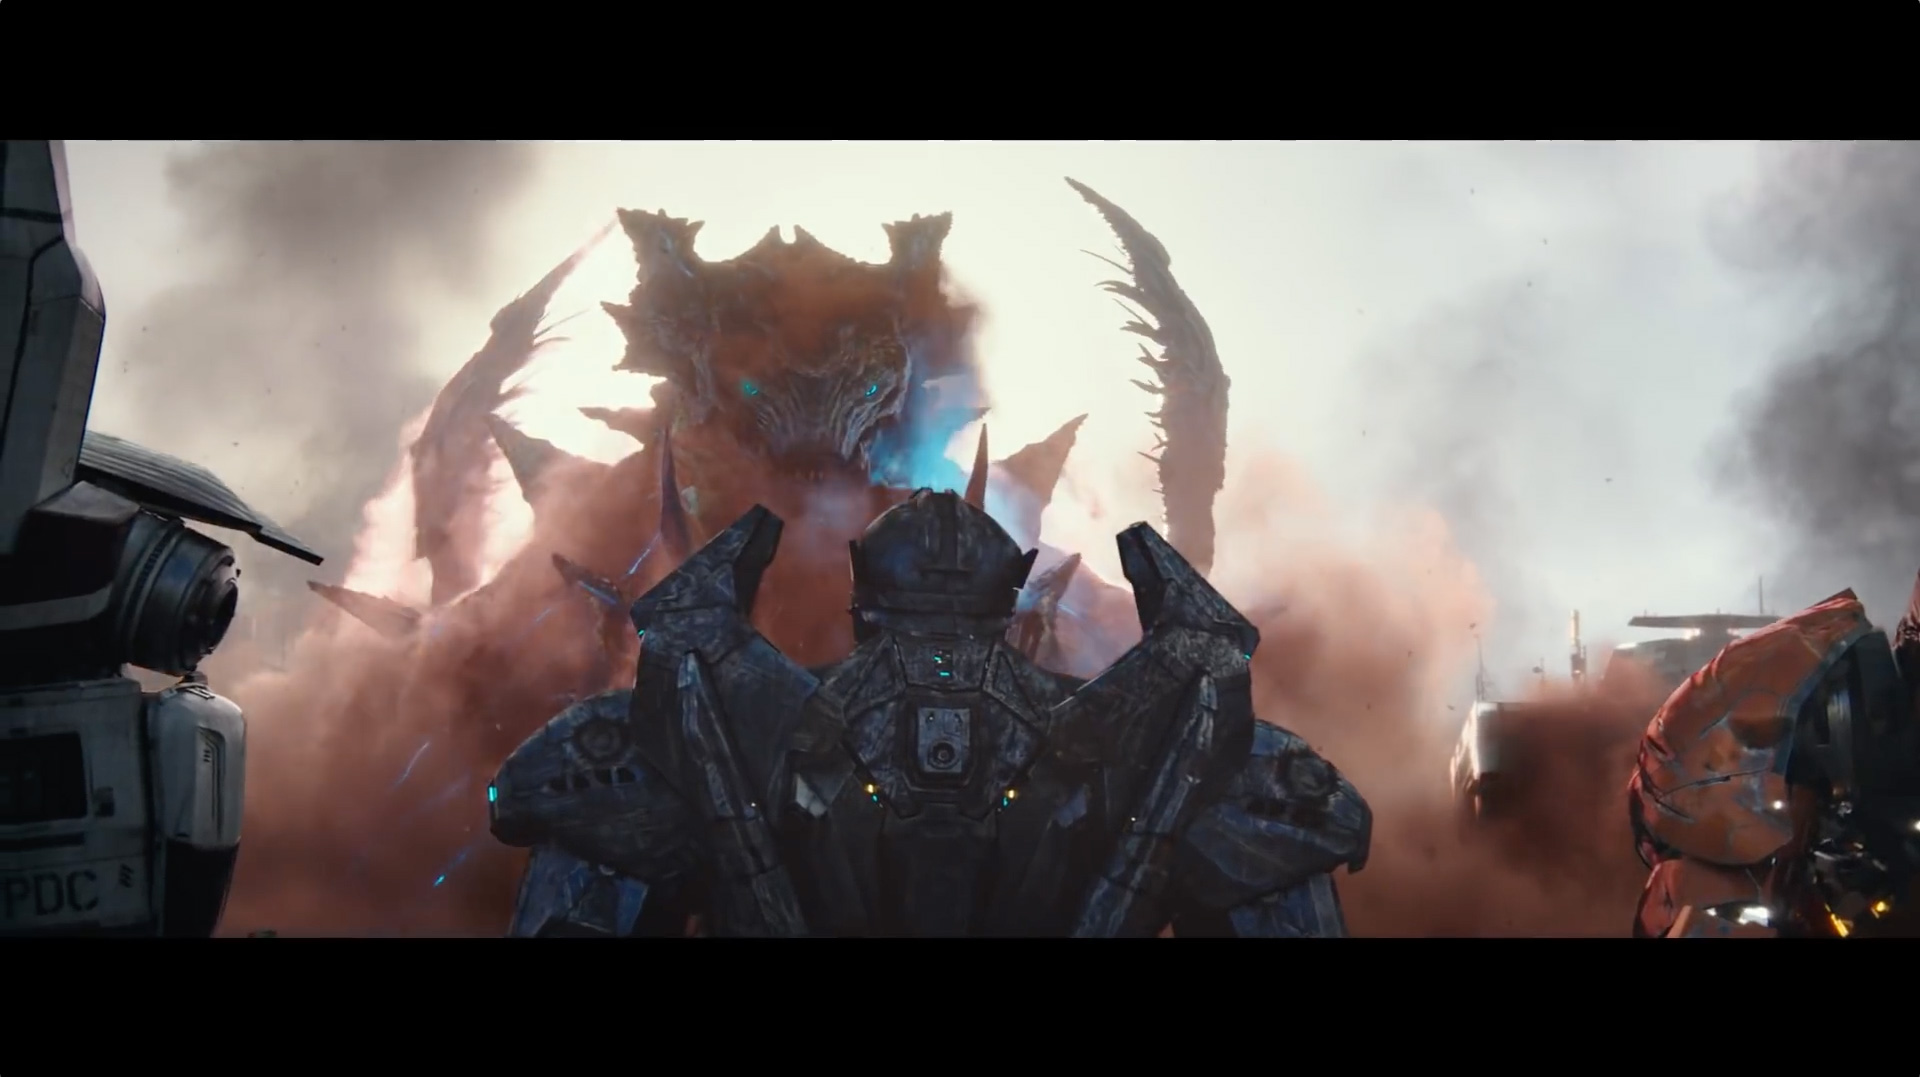 PACIFIC RIM: UPRISING - The Art of VFXThe Art of VFX Pacific Rim